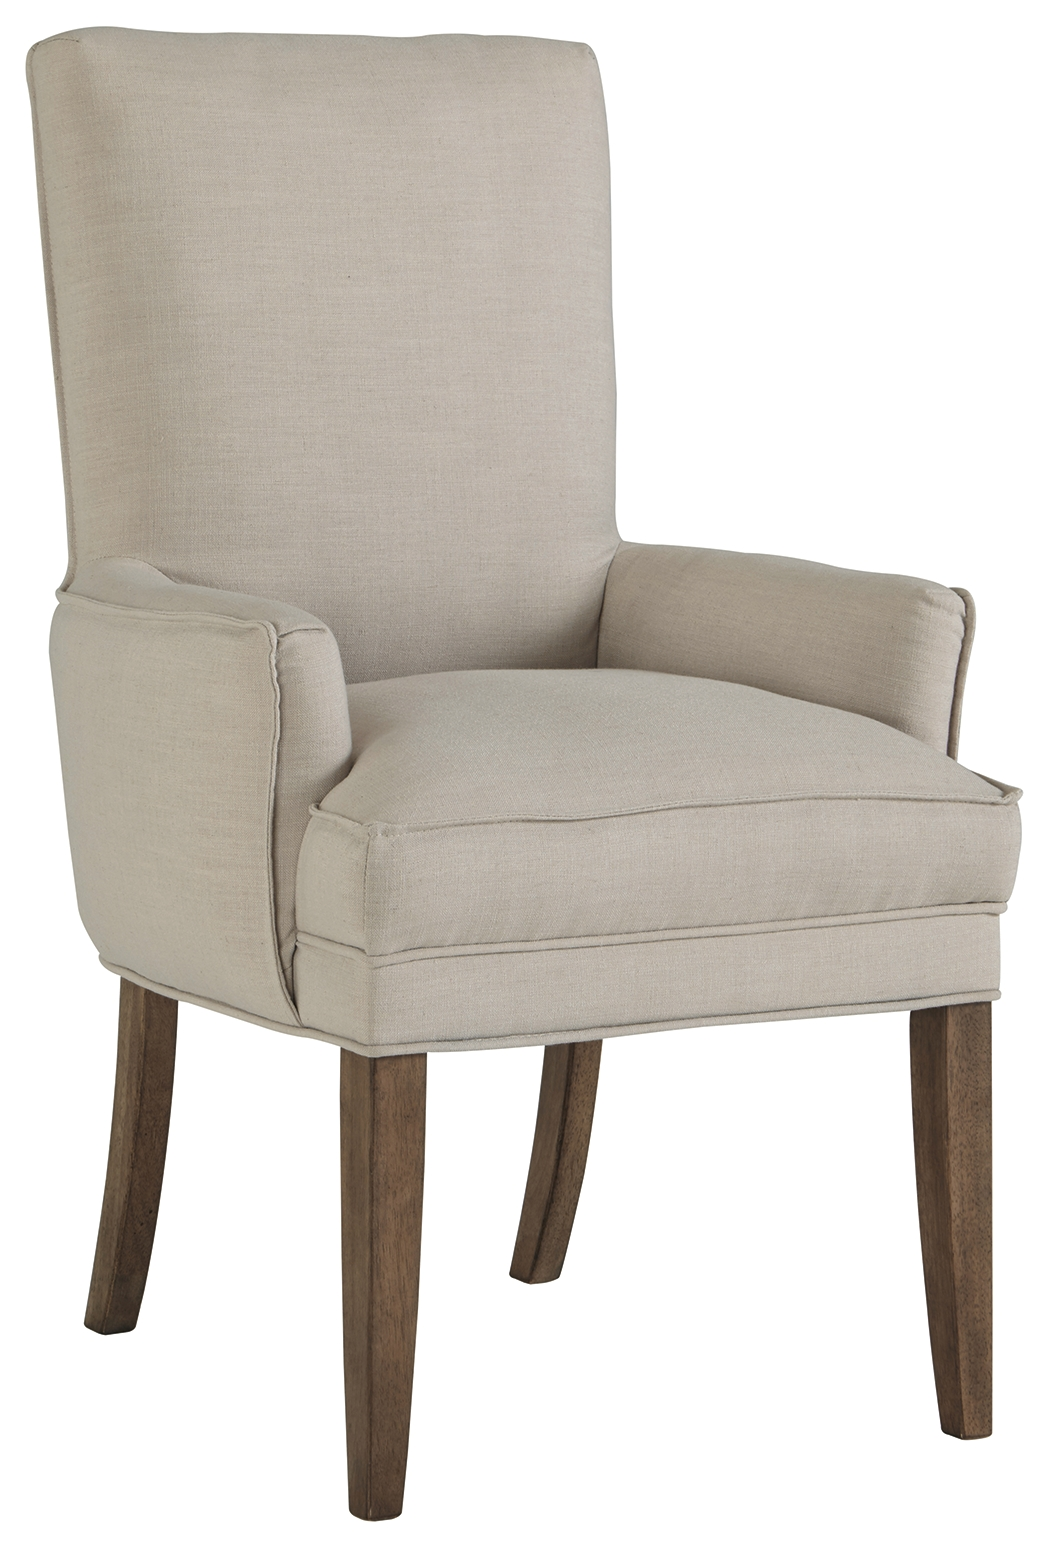 Grindleburg UPH Dining ARM Chair